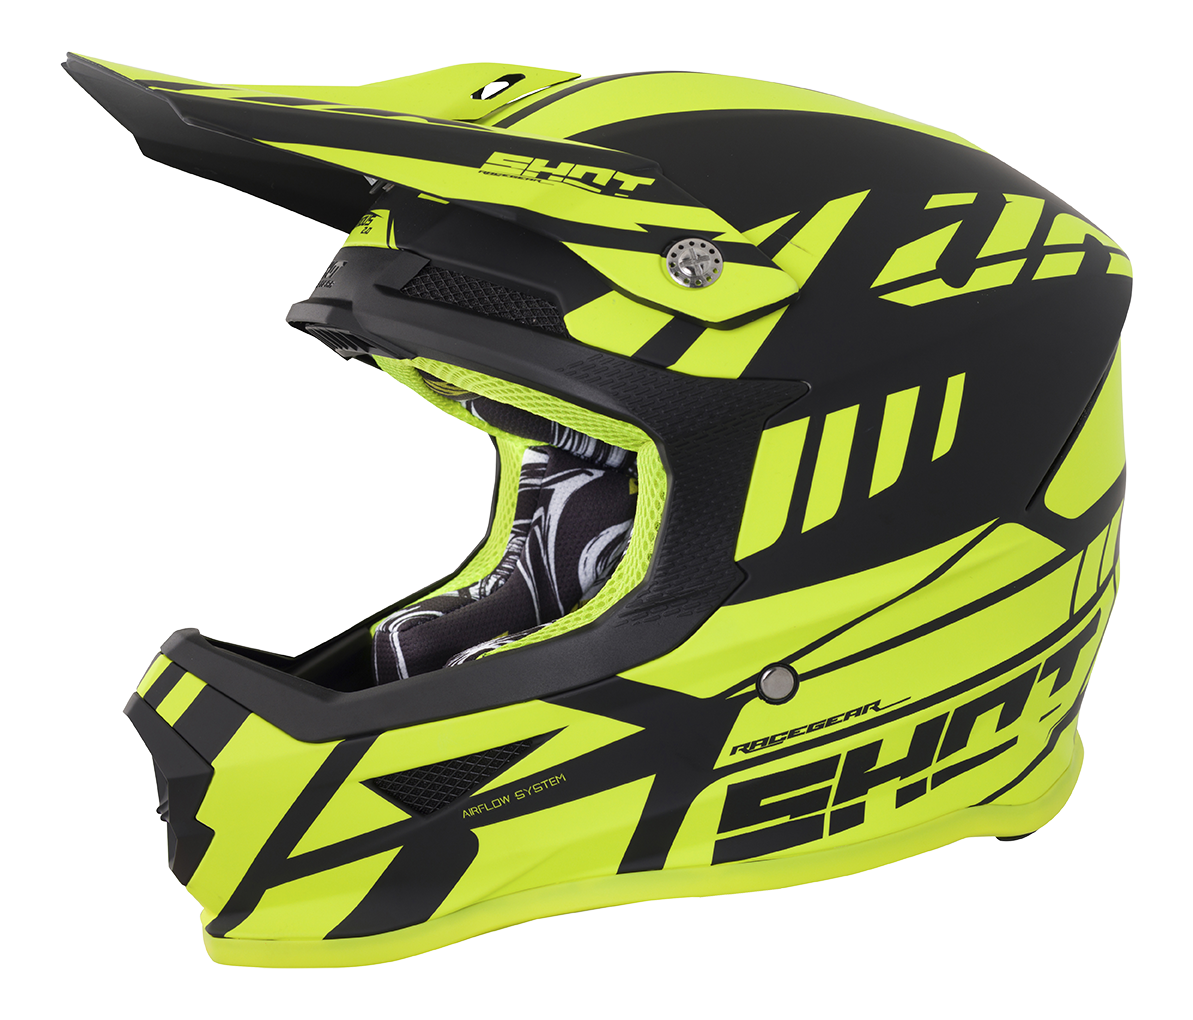 SHOT RACE GEAR 2018  HELMA FURIOUS RIOT  NEON YELLOW MATT